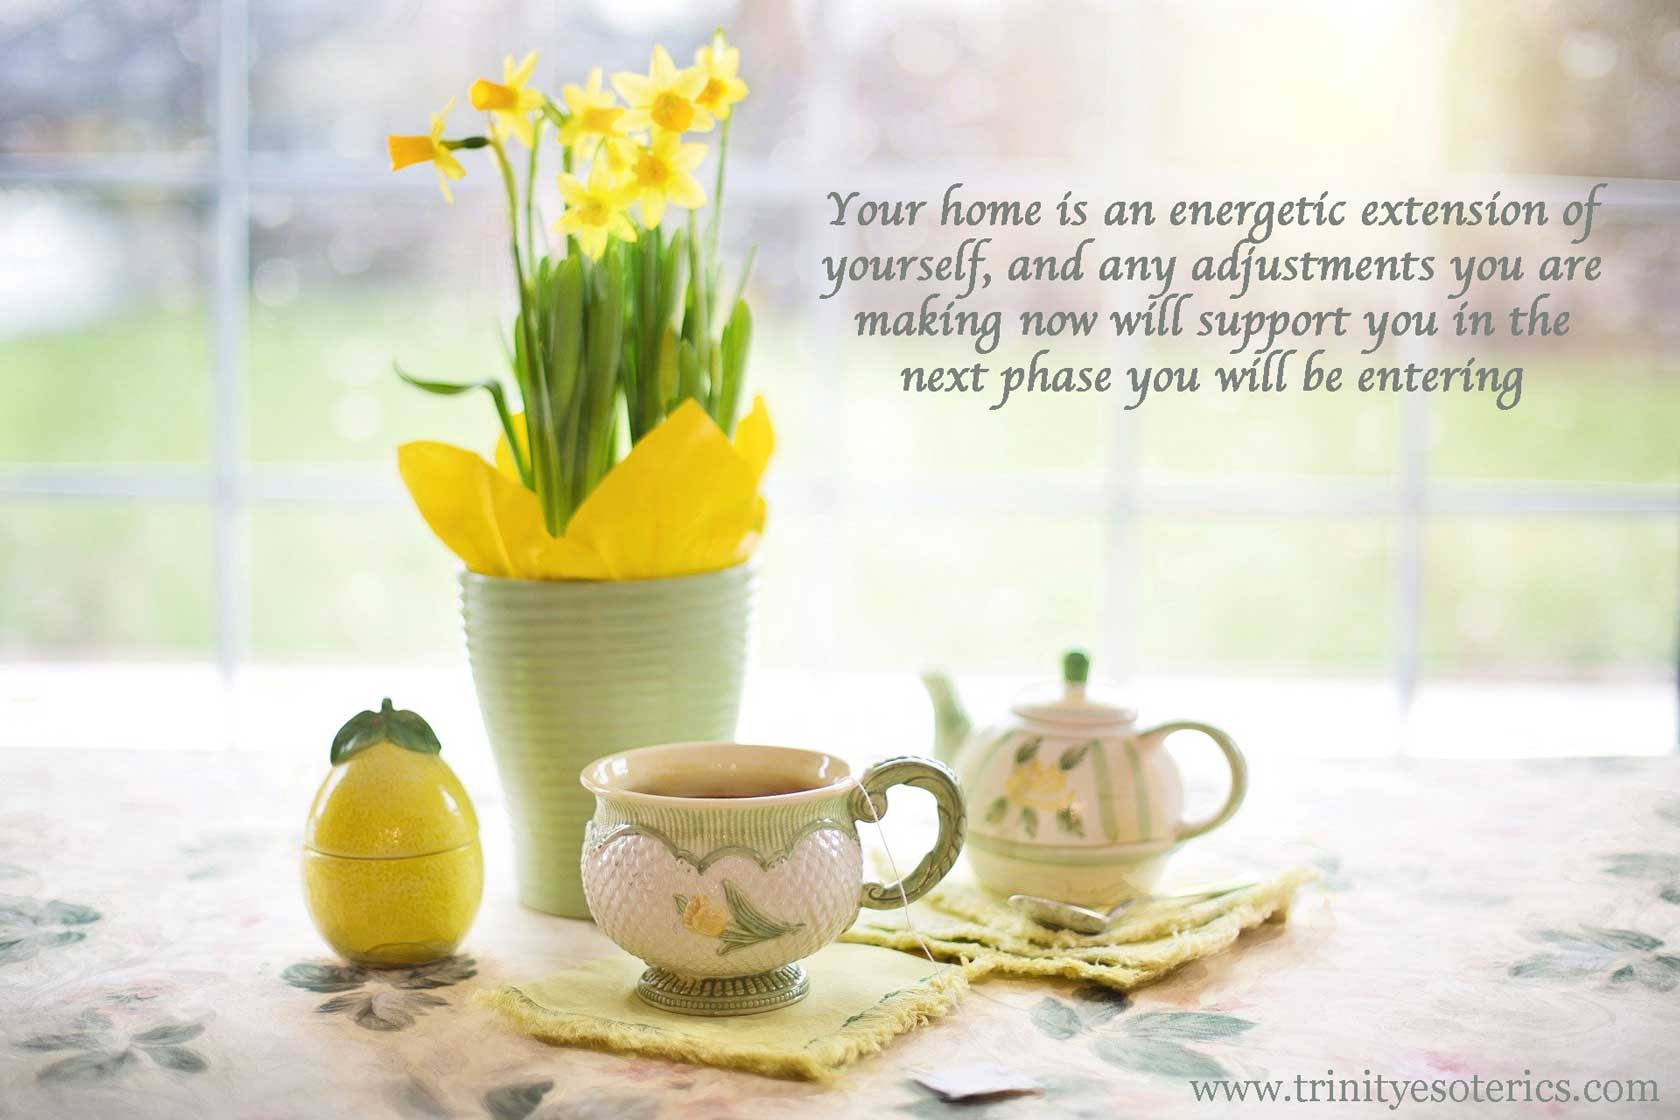 daffodils and teapot trinity esoterics